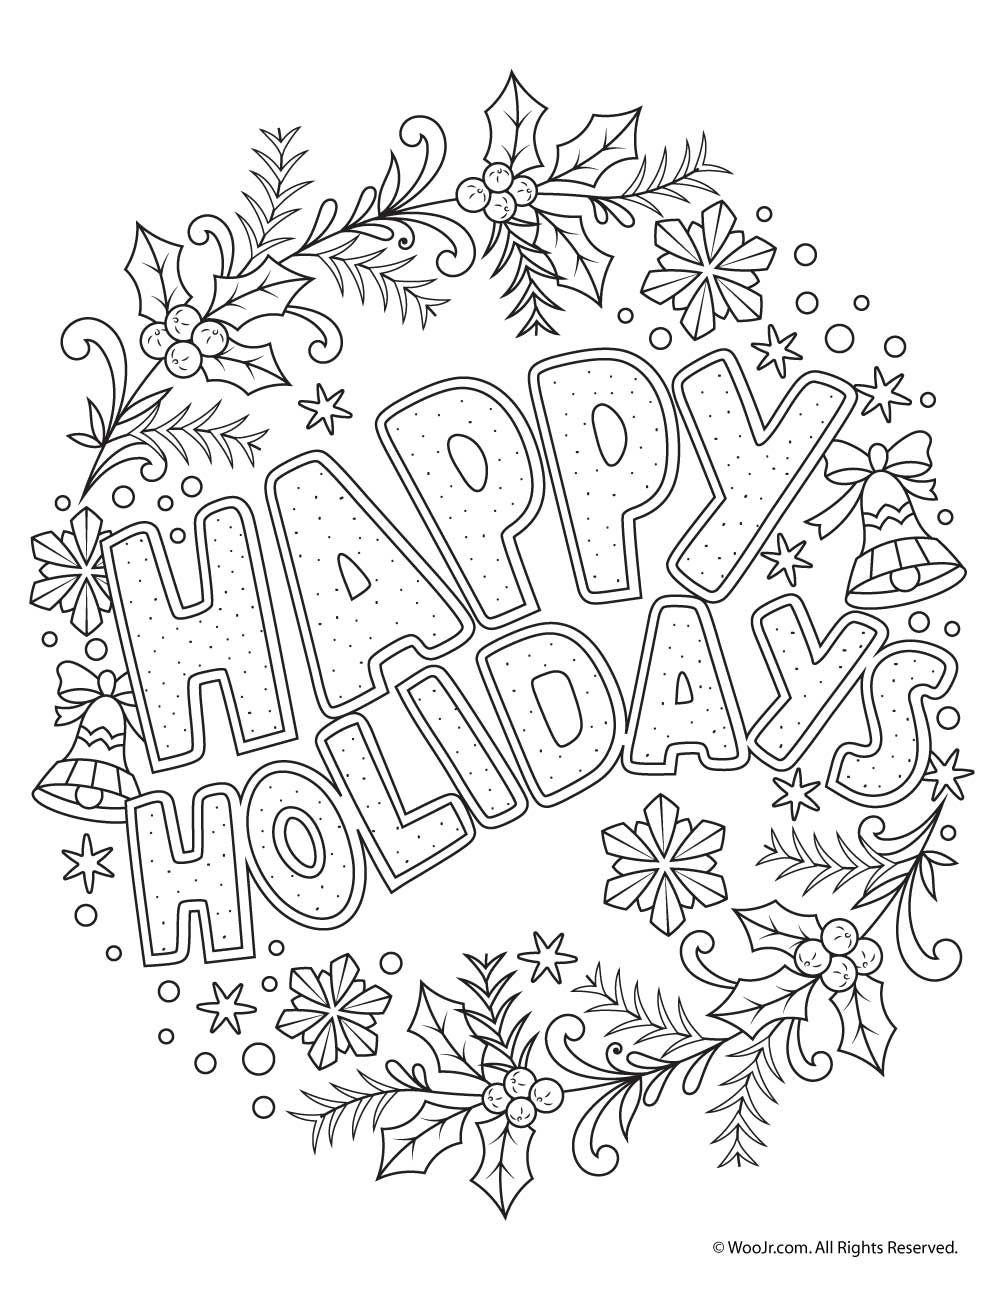 christmas coloring pages for adults free adult coloring pages seasonal winterchristmas adults christmas coloring pages for free